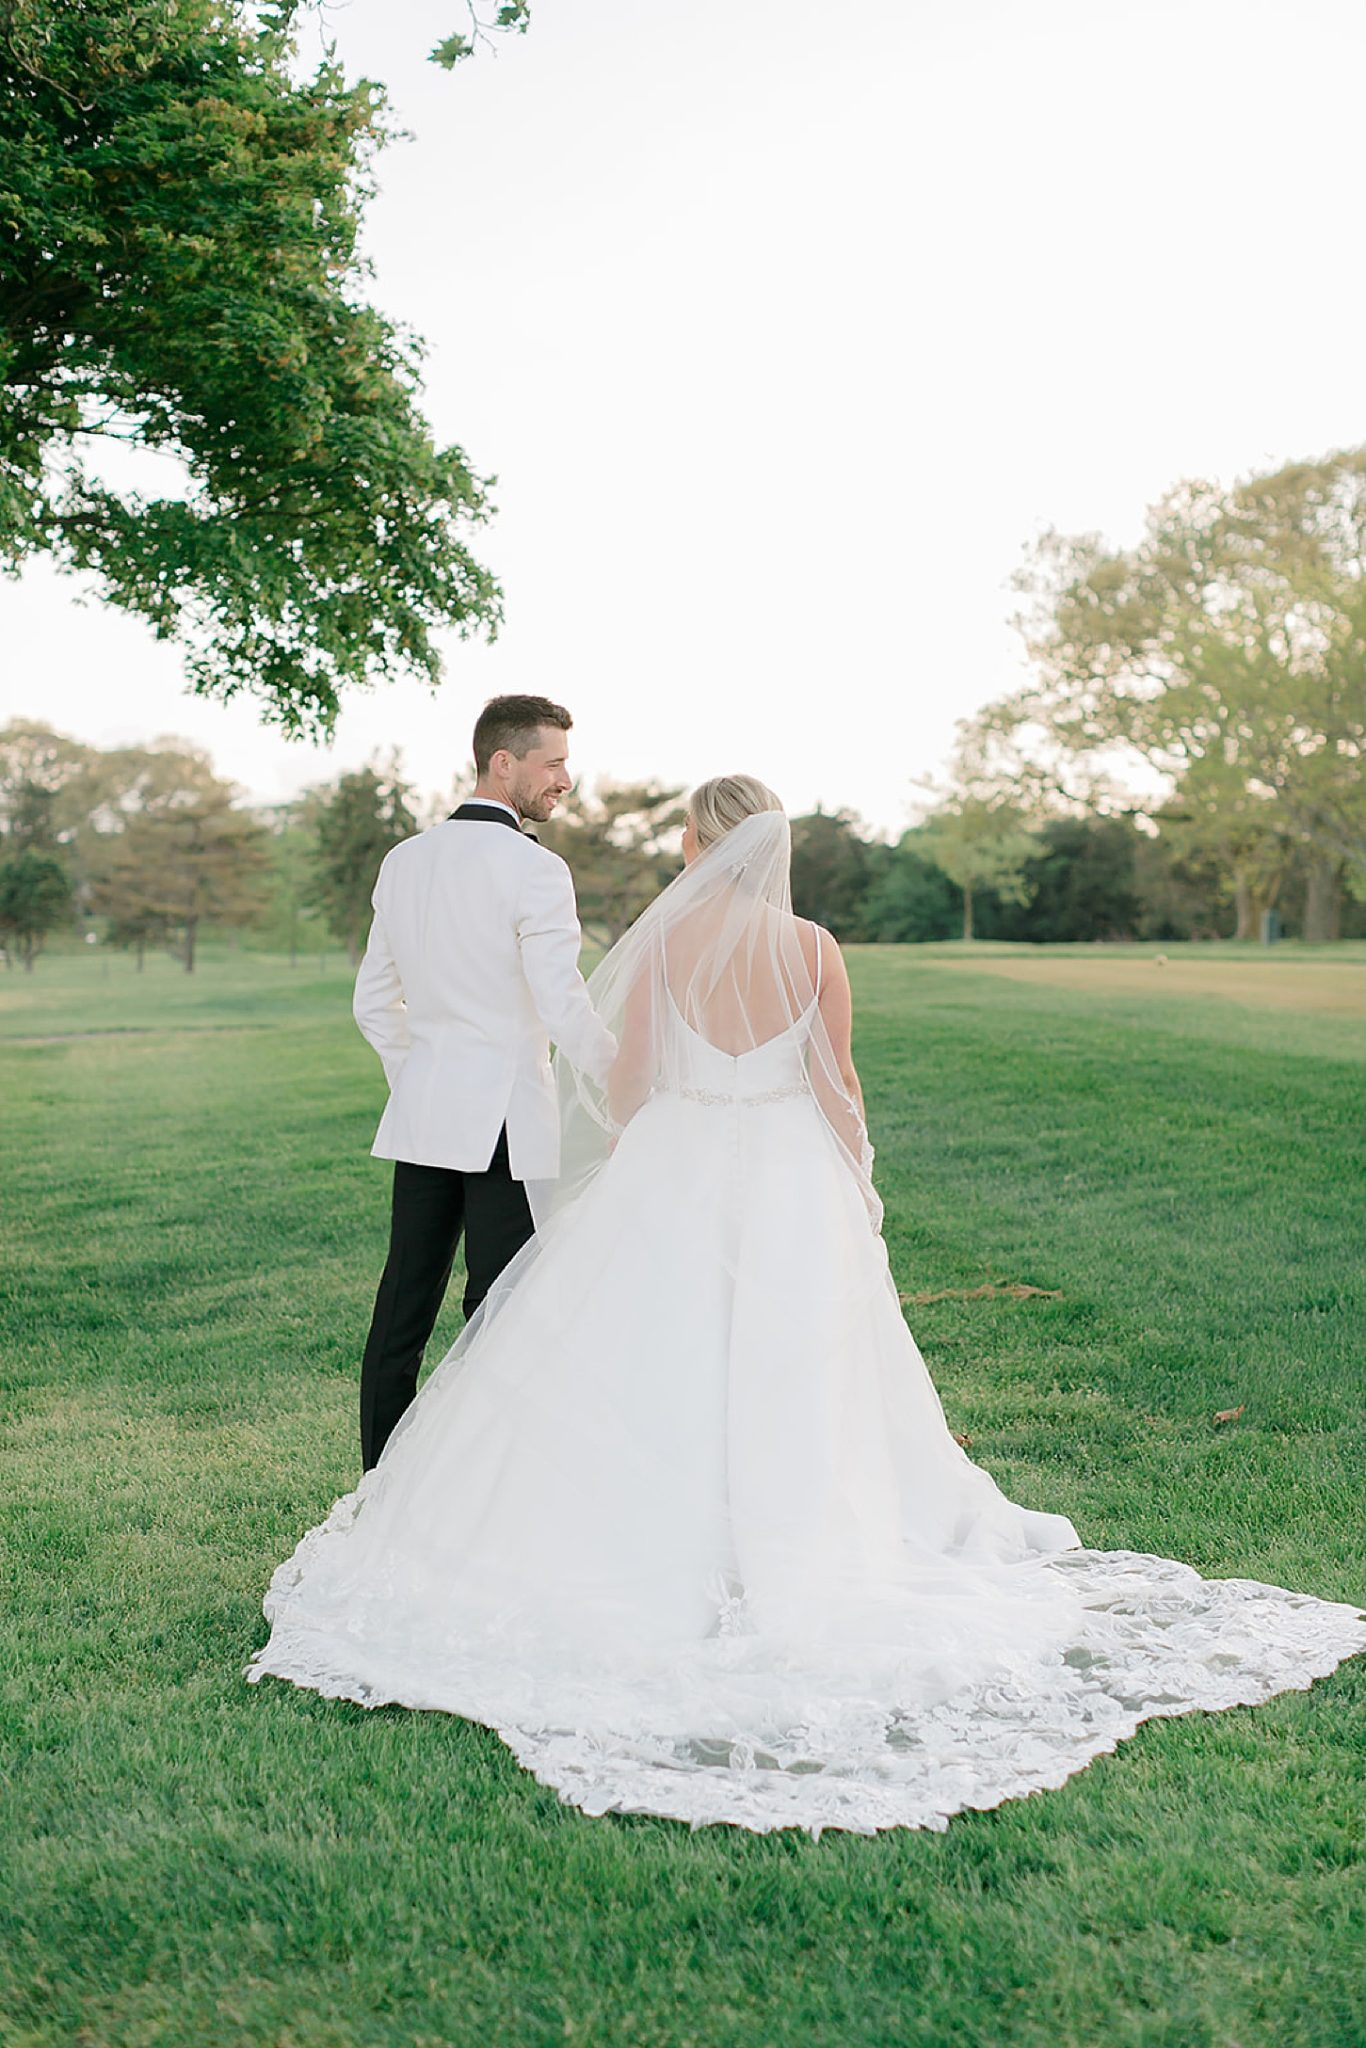 Linwood Country Club Summer Wedding Photography Studio by Magdalena Studios Jenn Kyle 0048 scaled